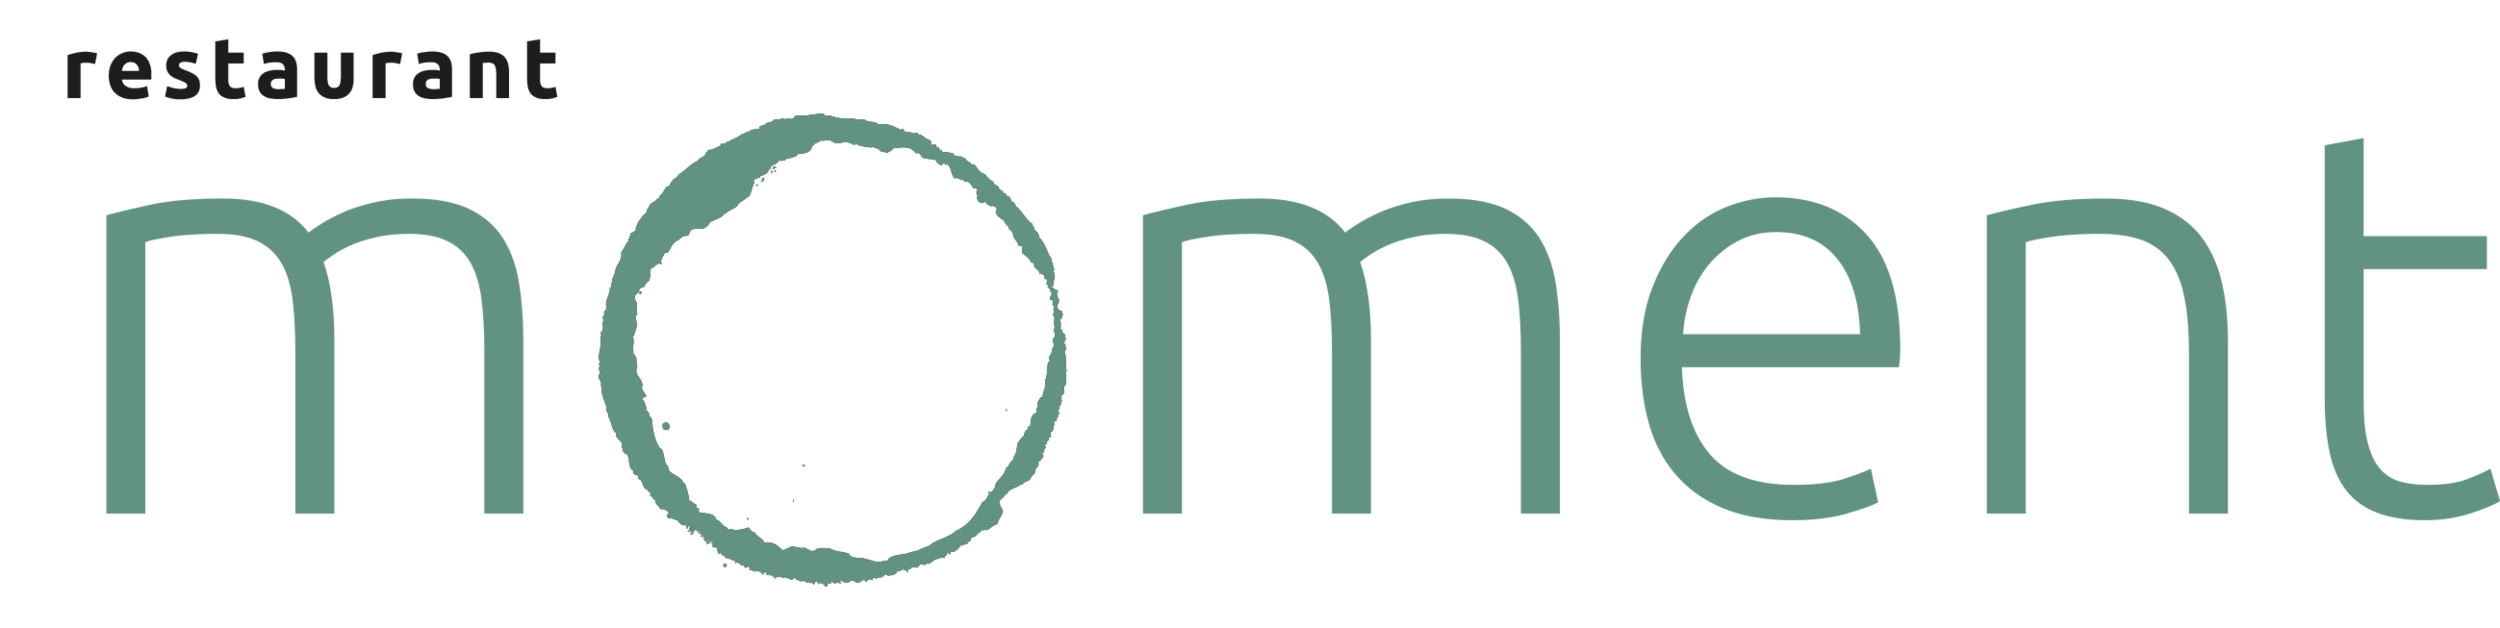 Moment_Logo_GreenTransparent01.png